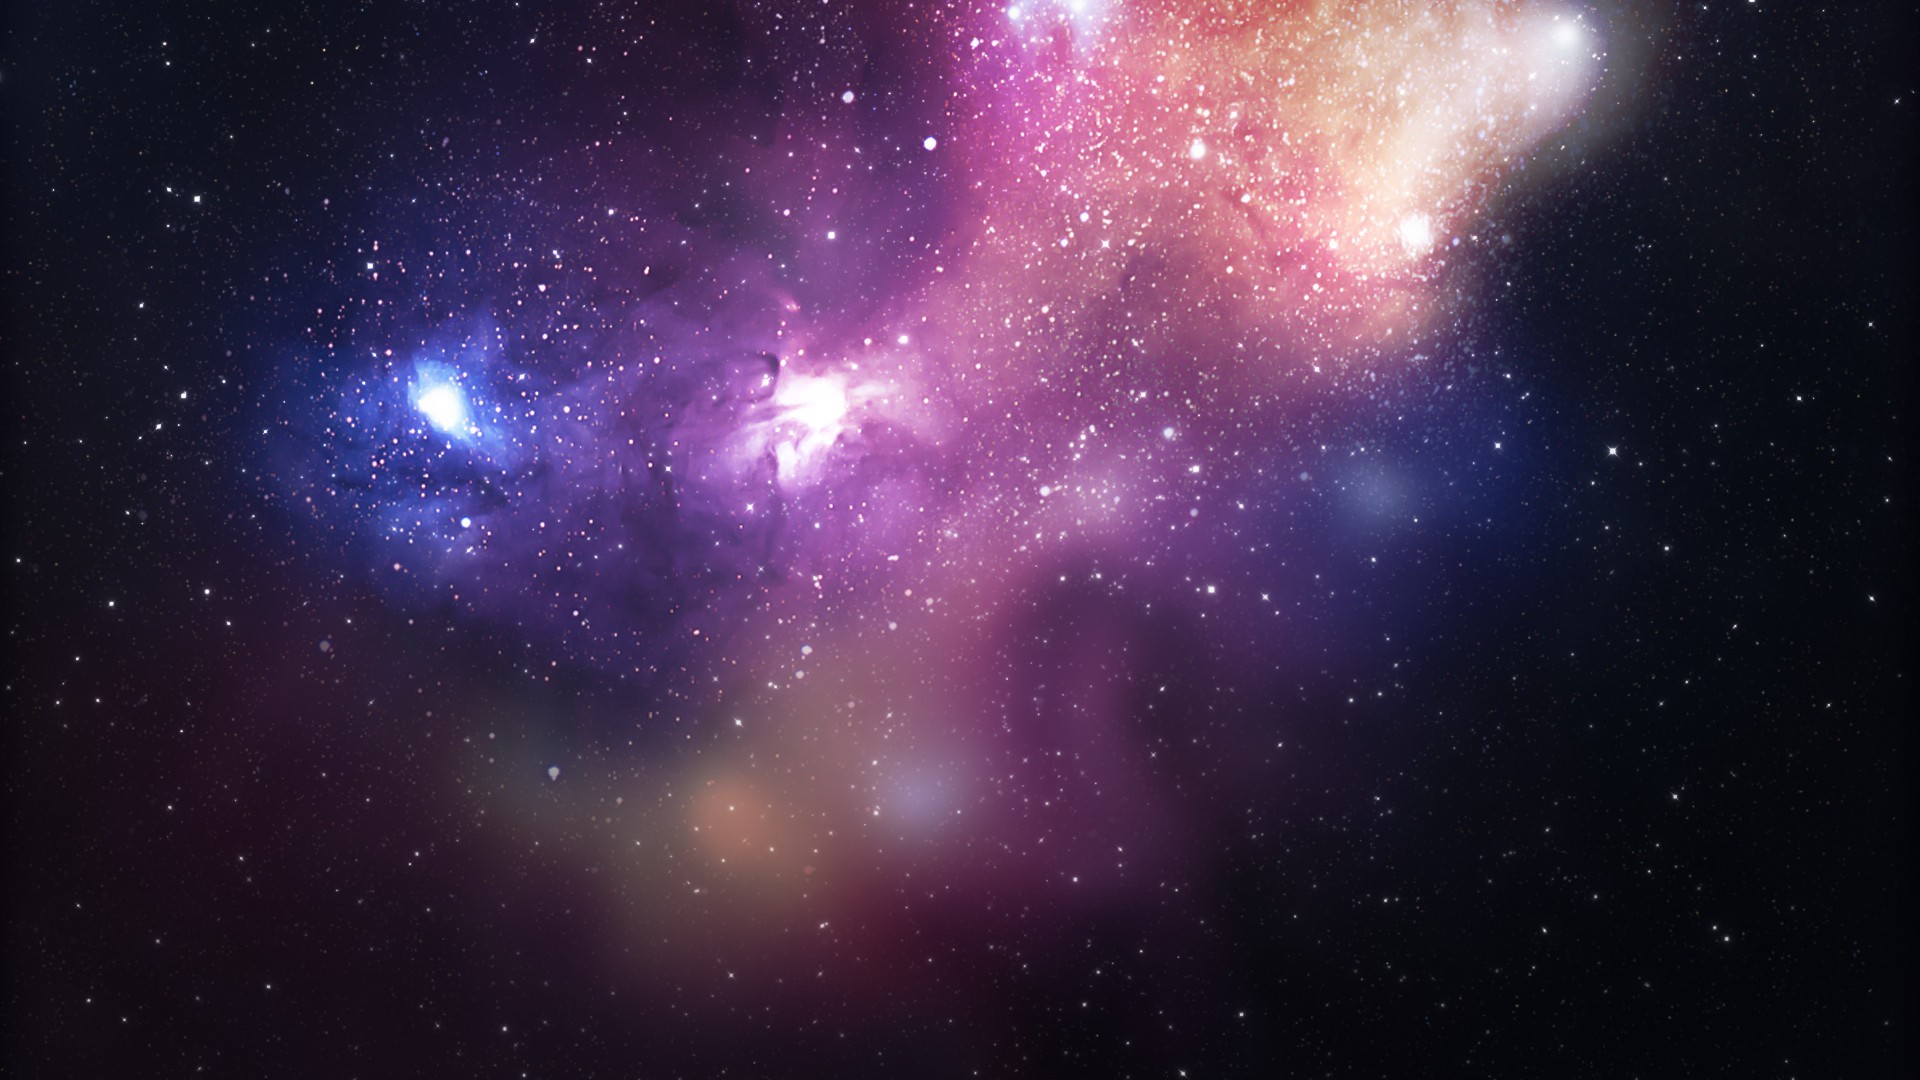 Galaxy Background Tumblr Download Free Beautiful Wallpapers For